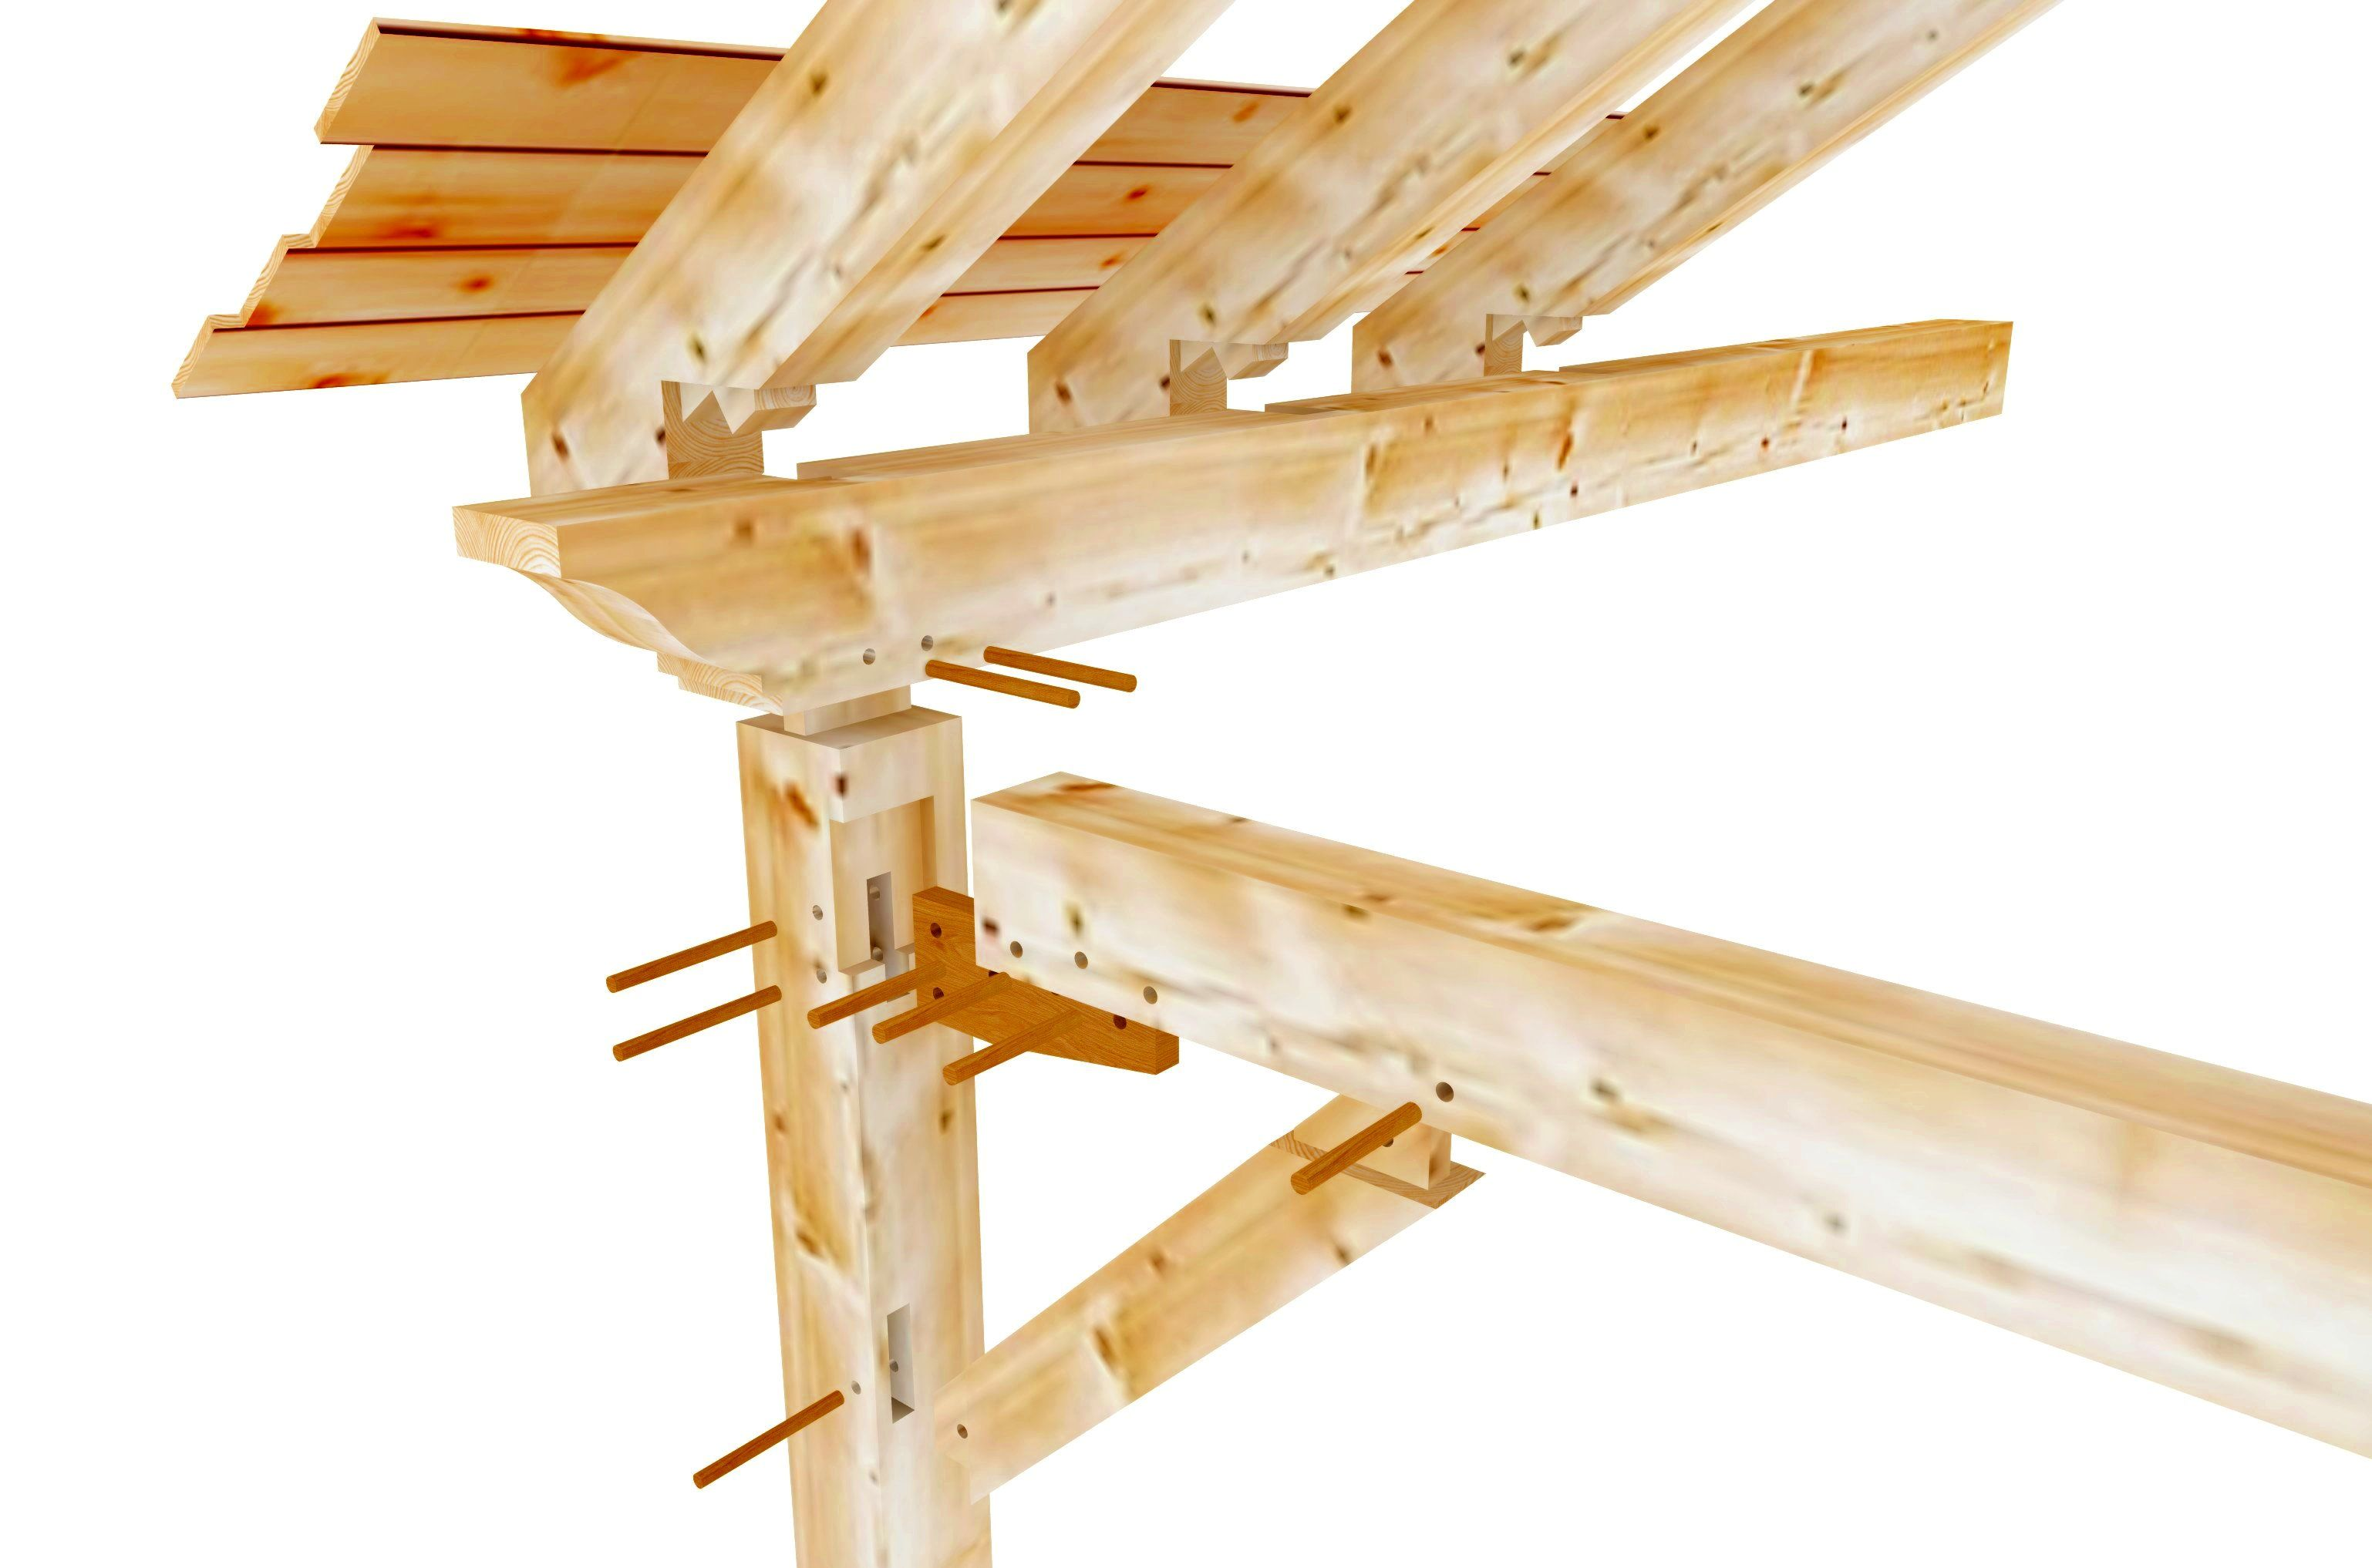 Assemblage Tenon Mortaise Timber Frame Construction Bois - Plan Charpente Toiture Bois